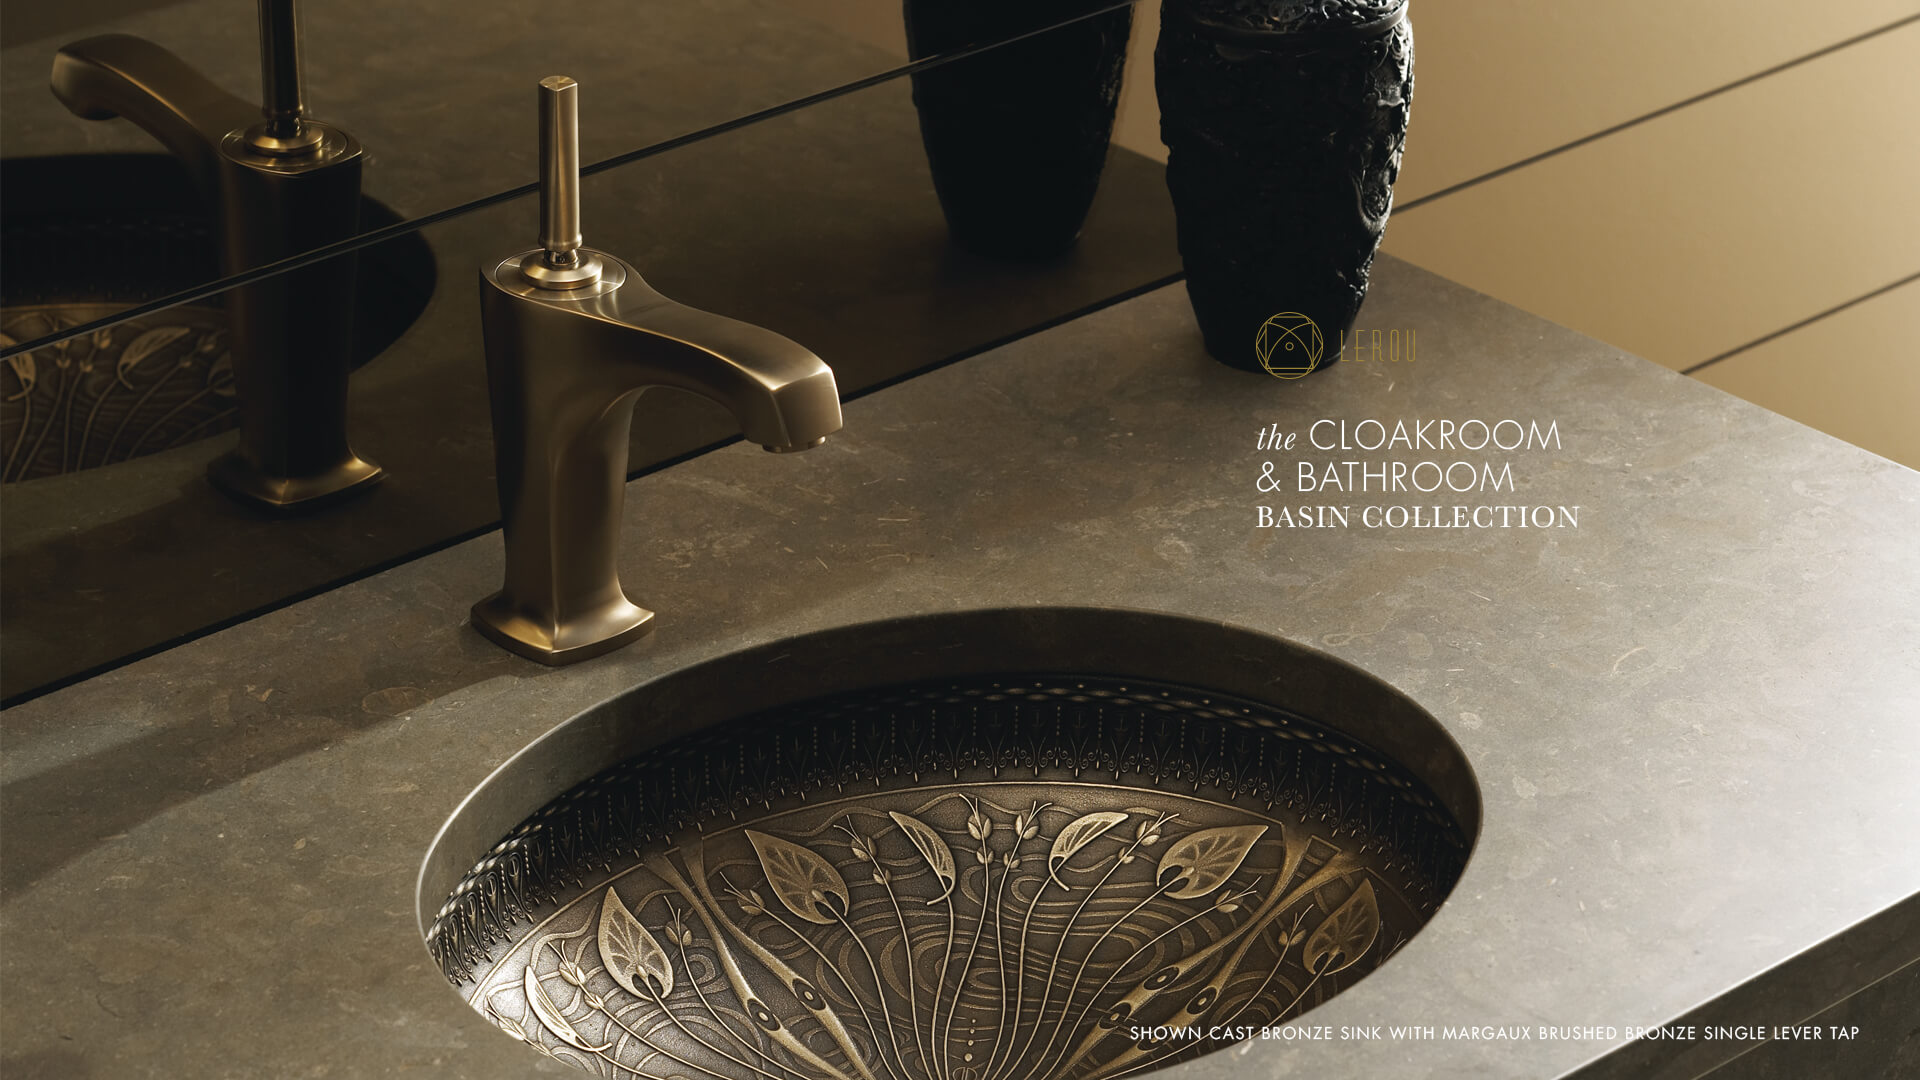 Lerou Cloakroom and Bathroom Basin Collection. Lerou Garderobe en Badkamer wastafel collectie.